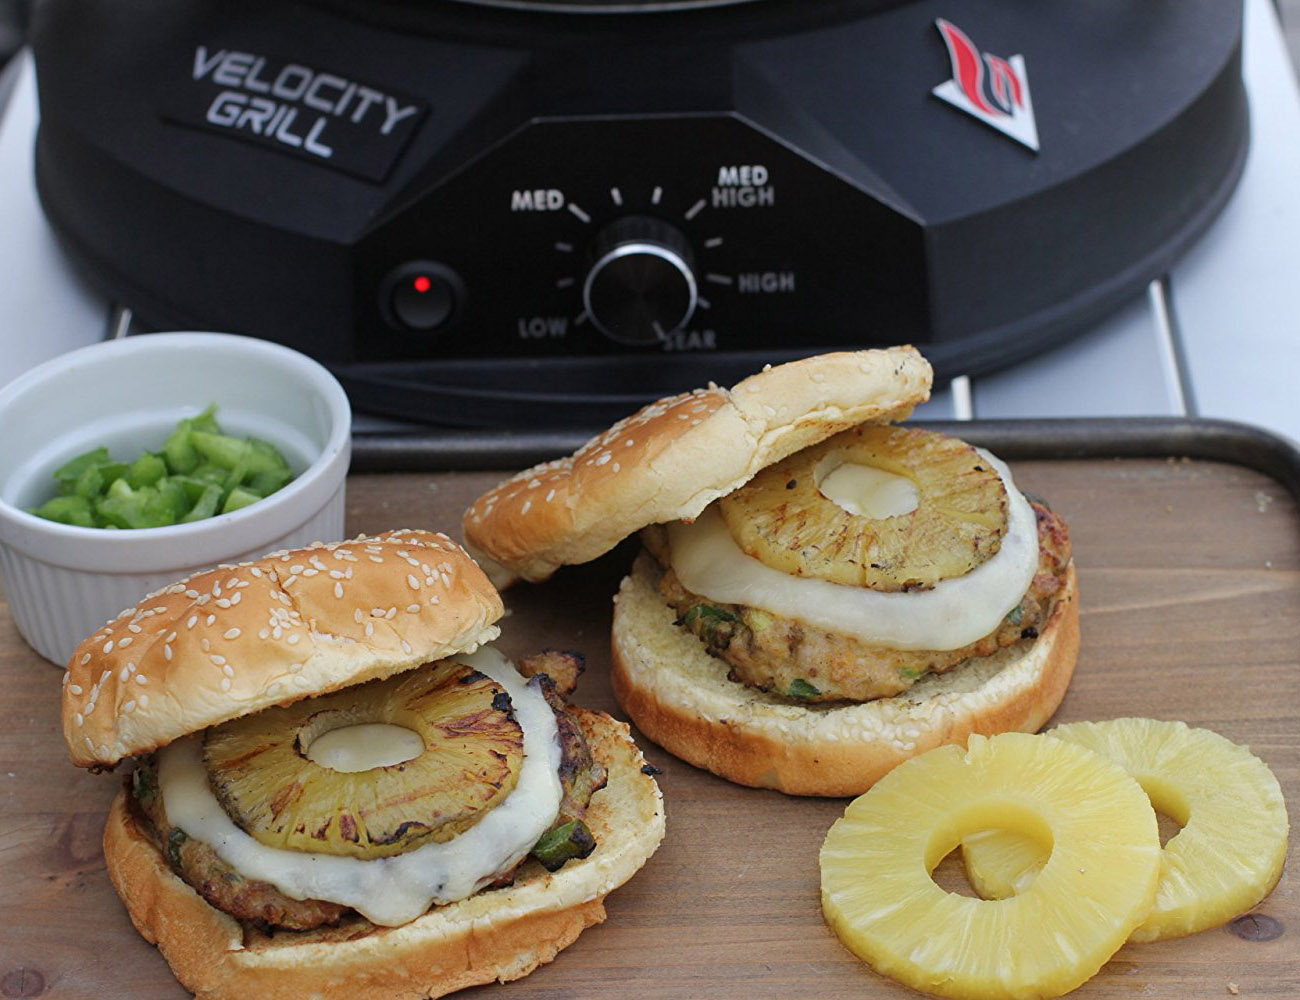 Velocity Grill, The Fastest Grill/Smoker/Stove/Boiler all in one!